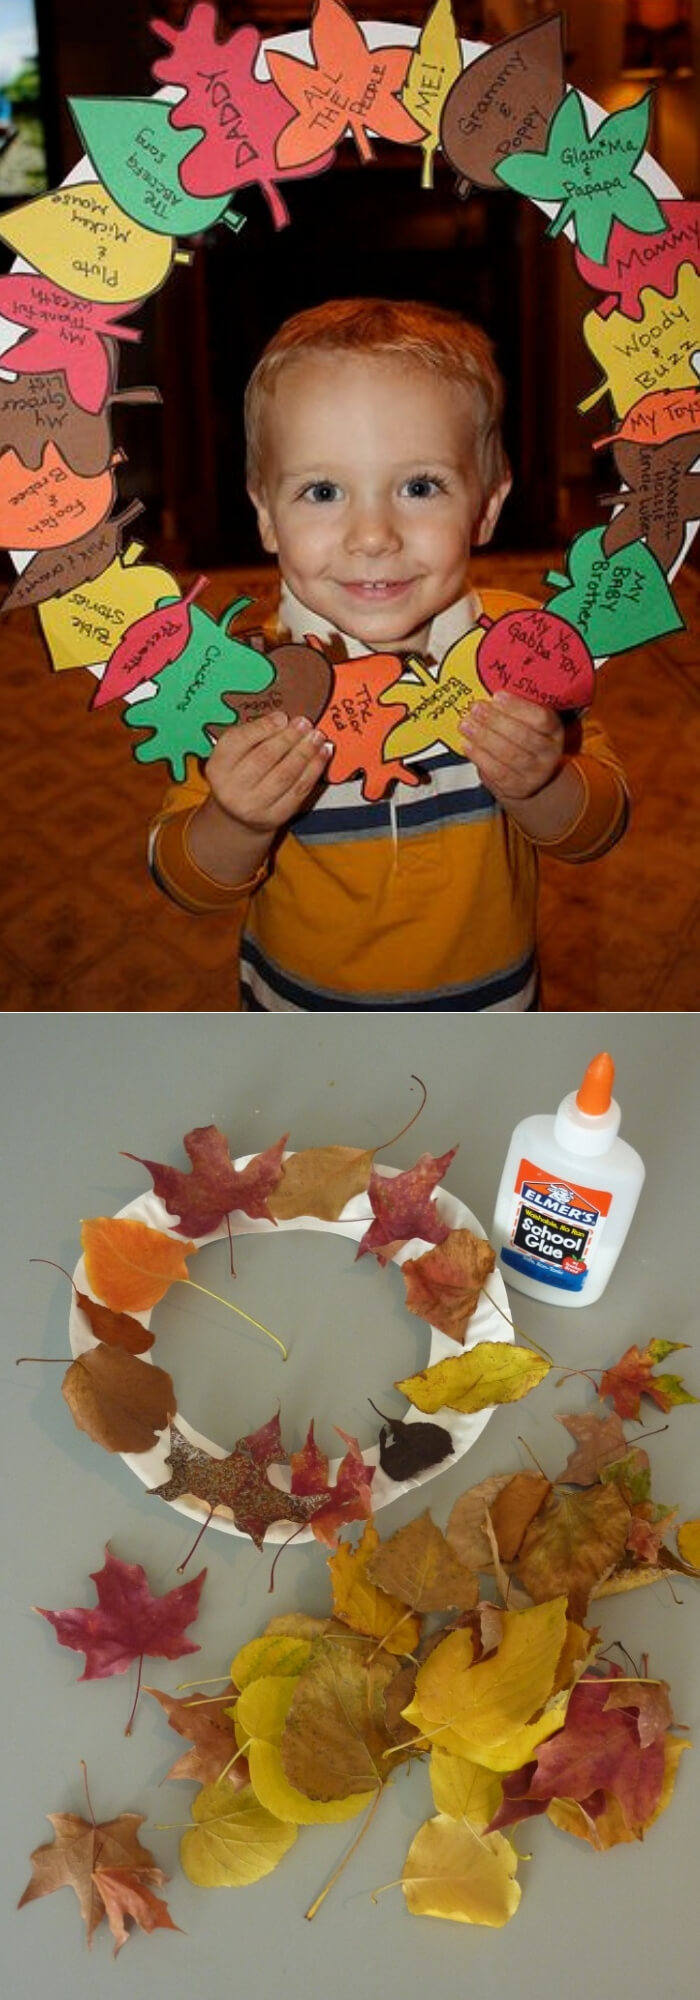 Wreath | Thanksgiving Gifts Kids Can Make - FarmFoodFamily.com